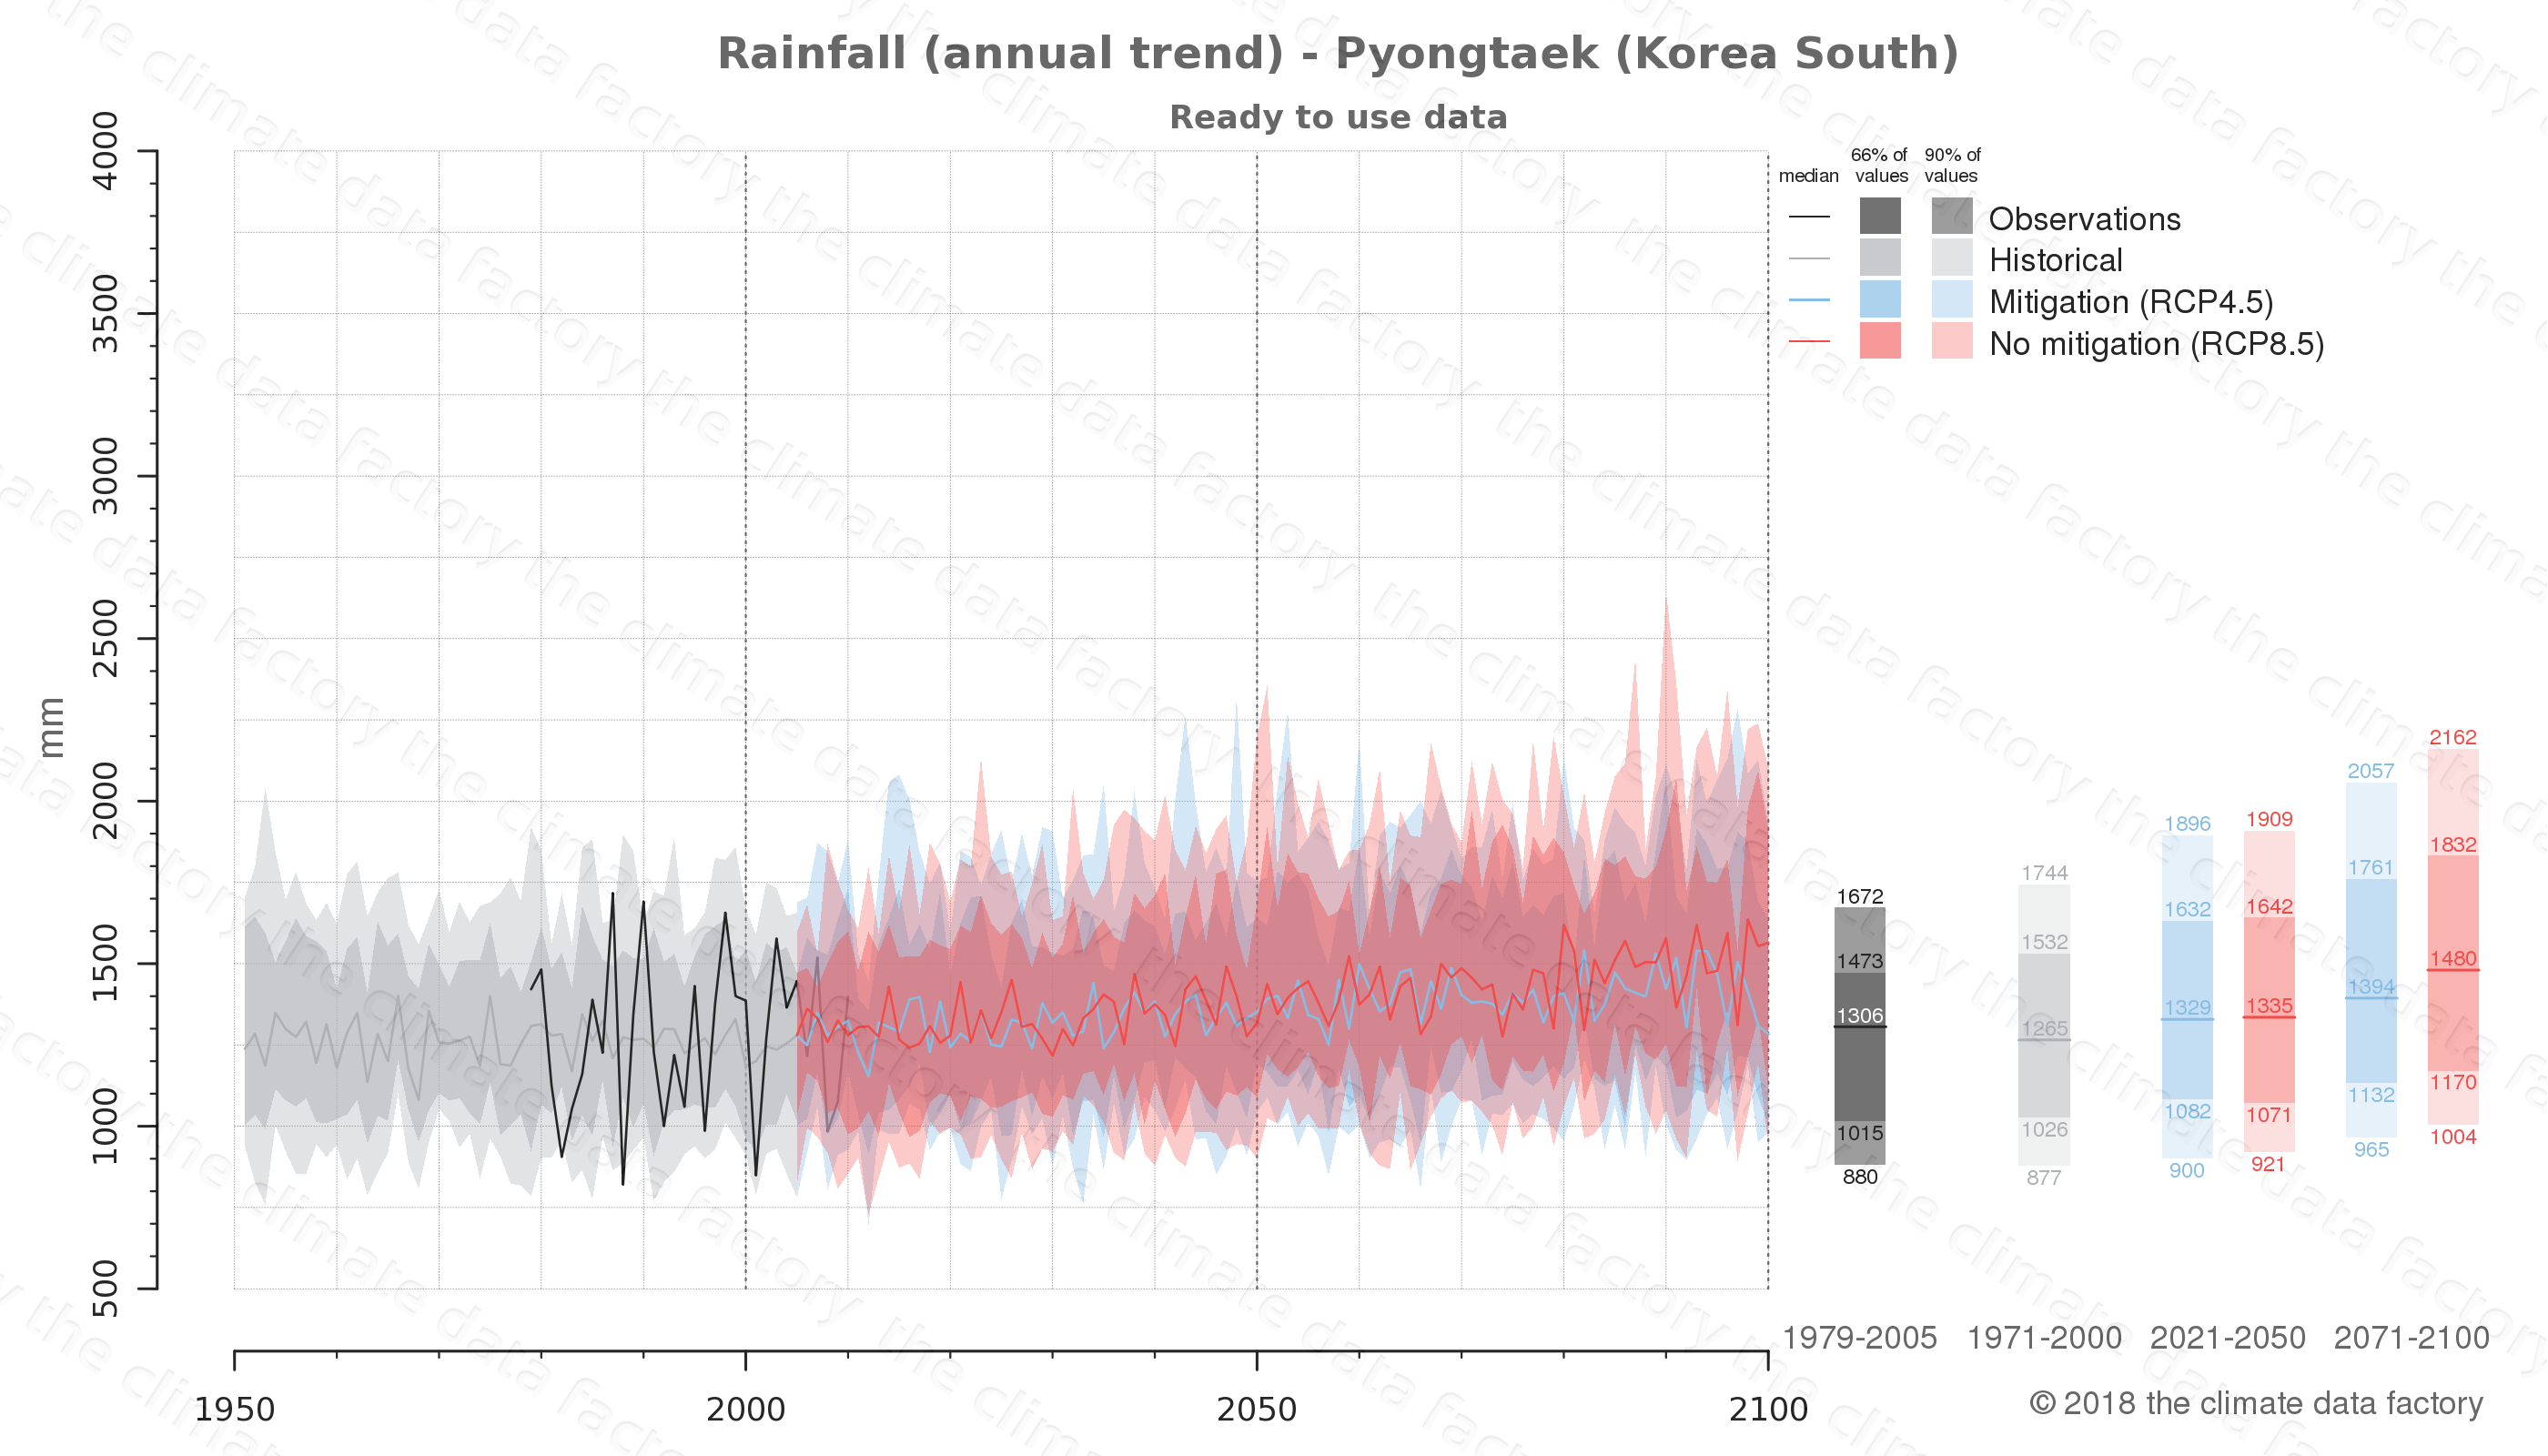 climate change data policy adaptation climate graph city data rainfall pyongtaek south korea